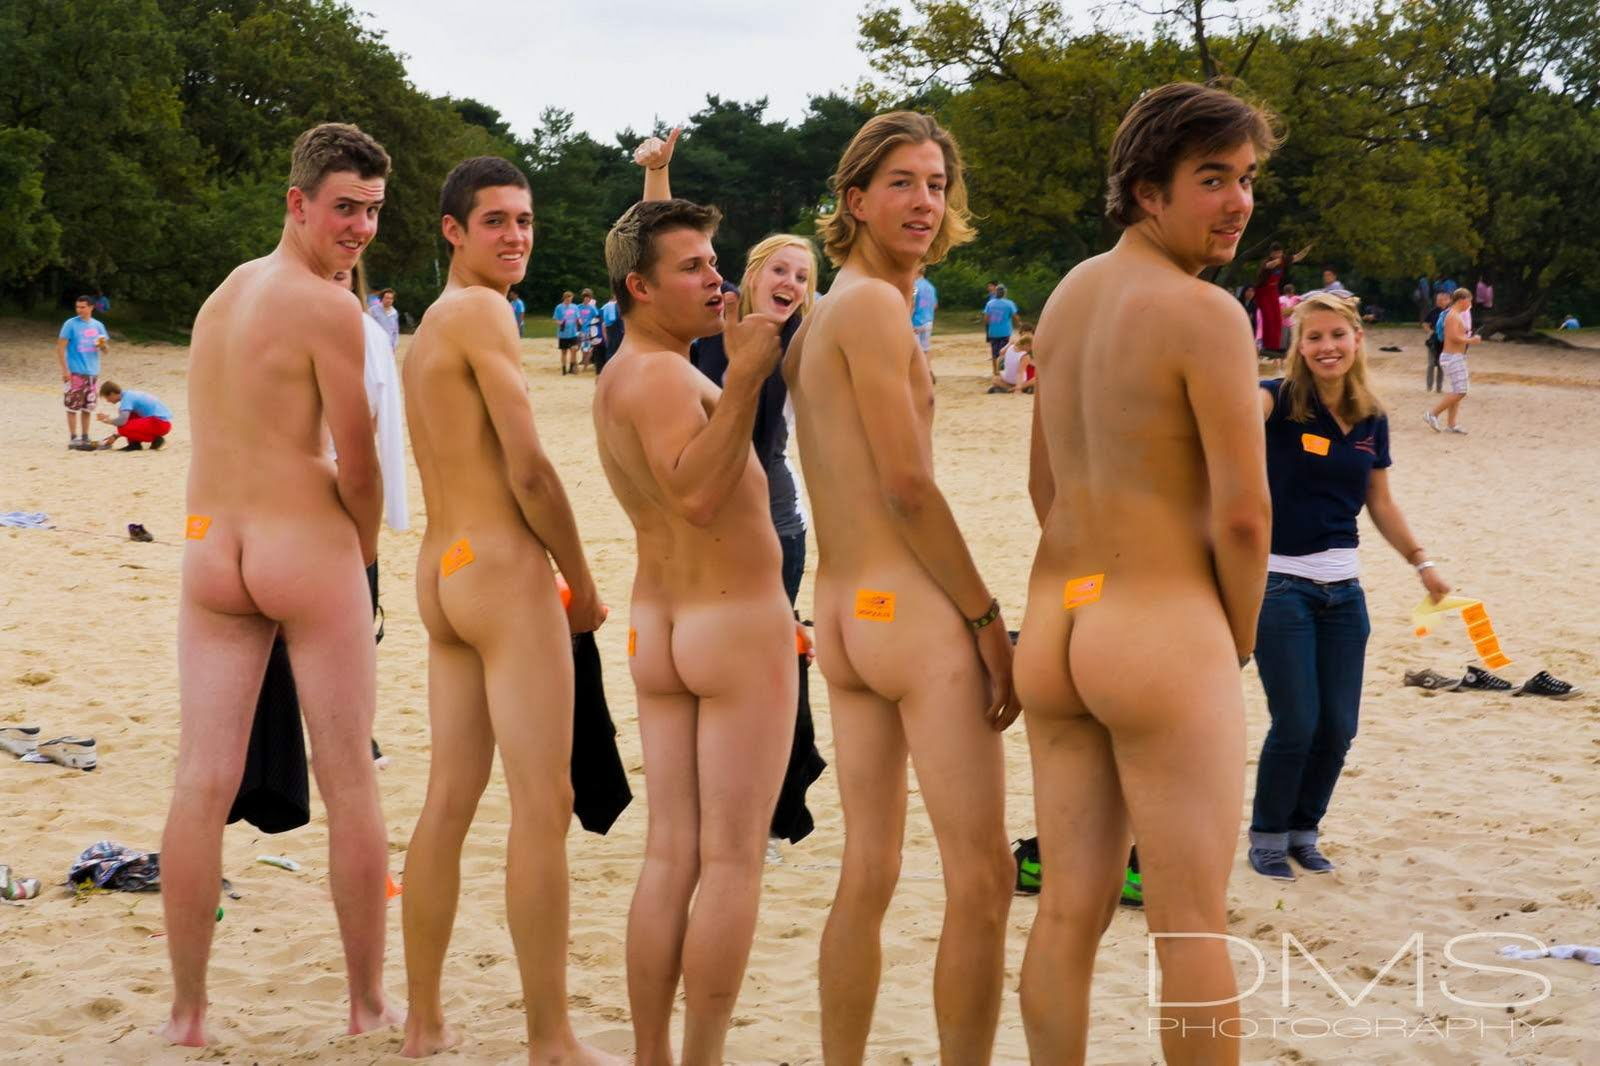 Group men Nude Undressed Dressed